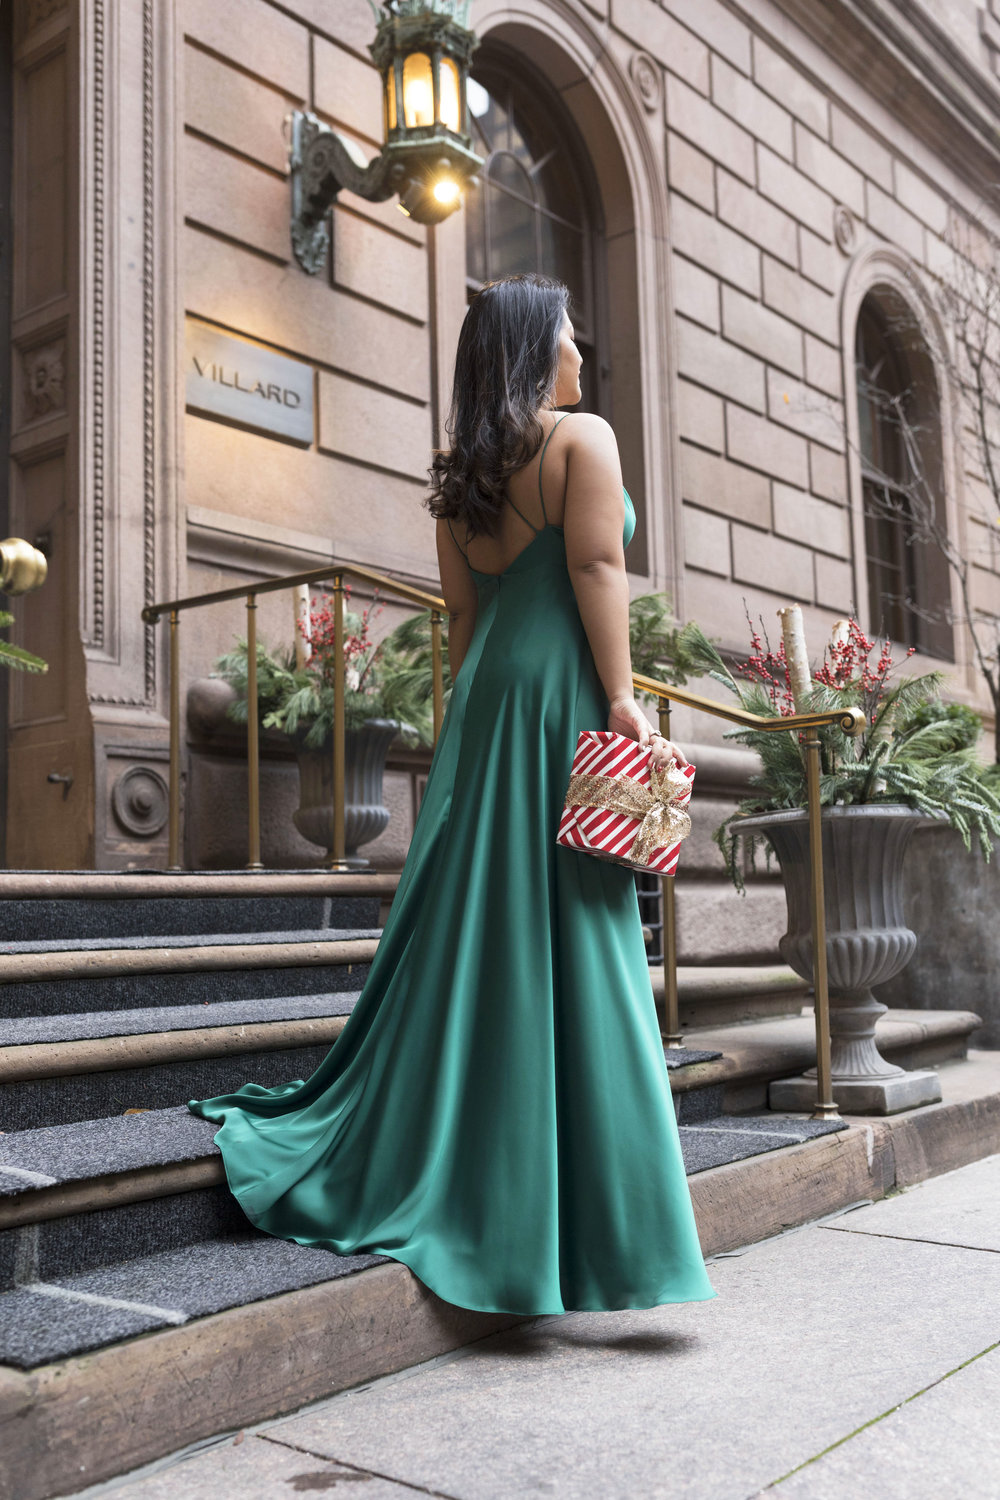 Krity S x Holiday Outfit x Forest Silk Aidan Mattox Gown 6.jpg